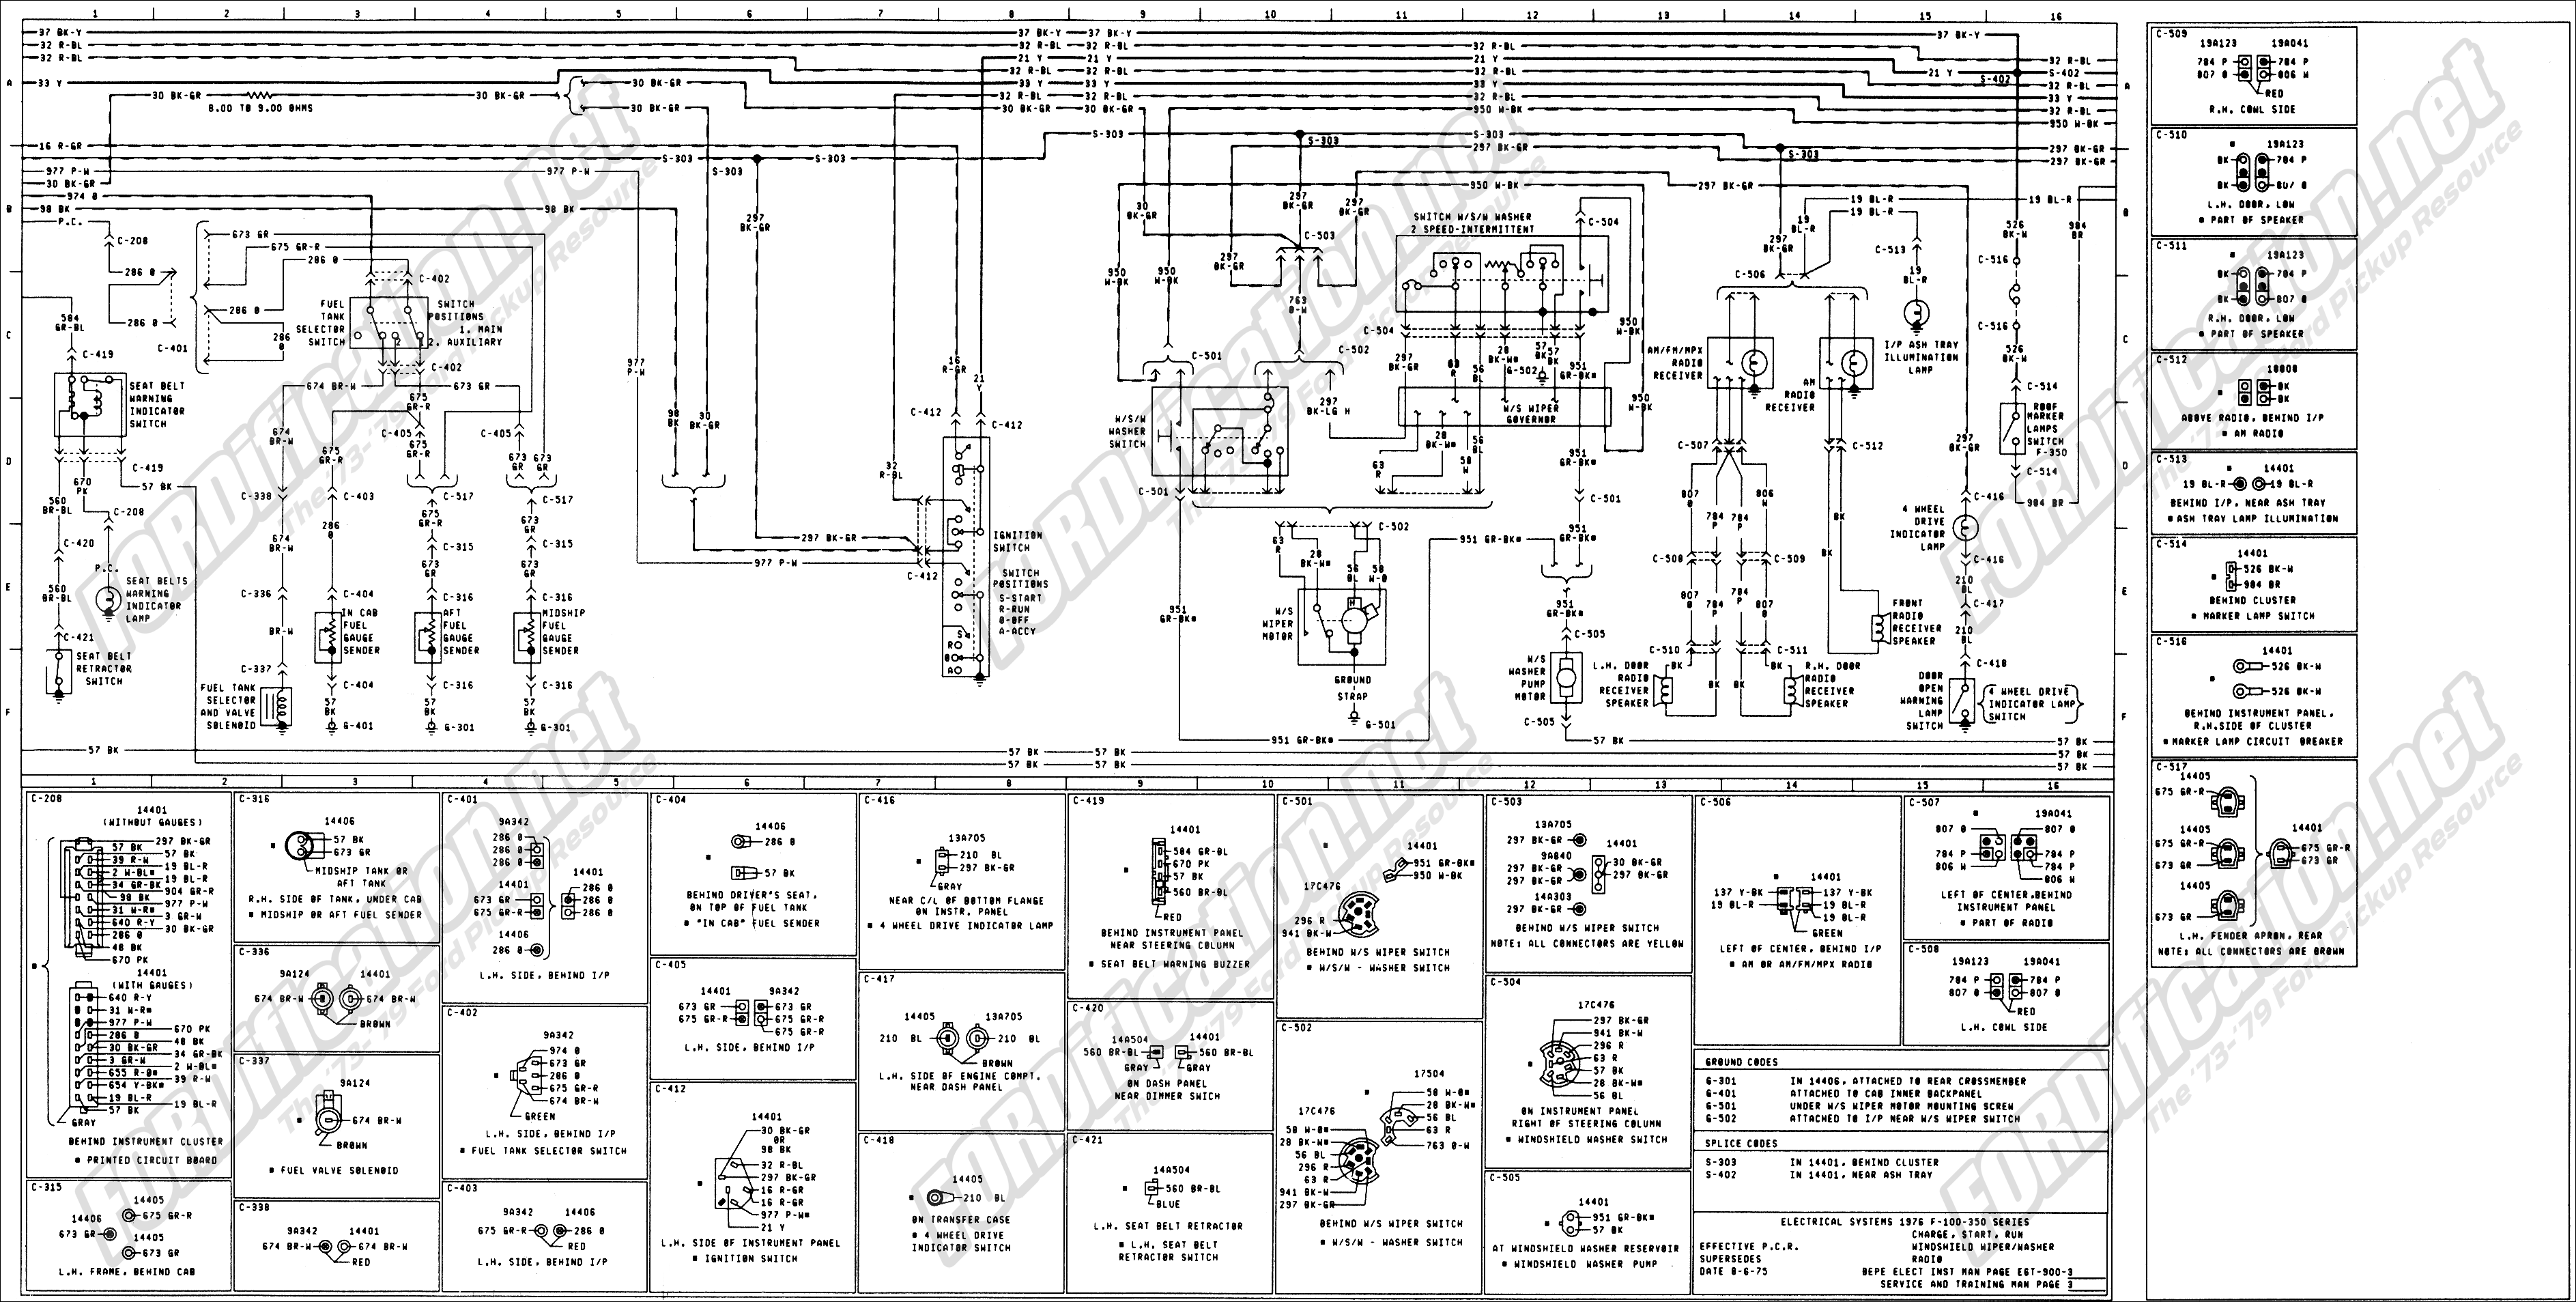 1977 f150 ranger wiring diagram wire center u2022 rh 45 77 184 10 4 Wire  Voltage Regulator Schematic with Generator 4 Wire Voltage Regulator  Schematic with ...